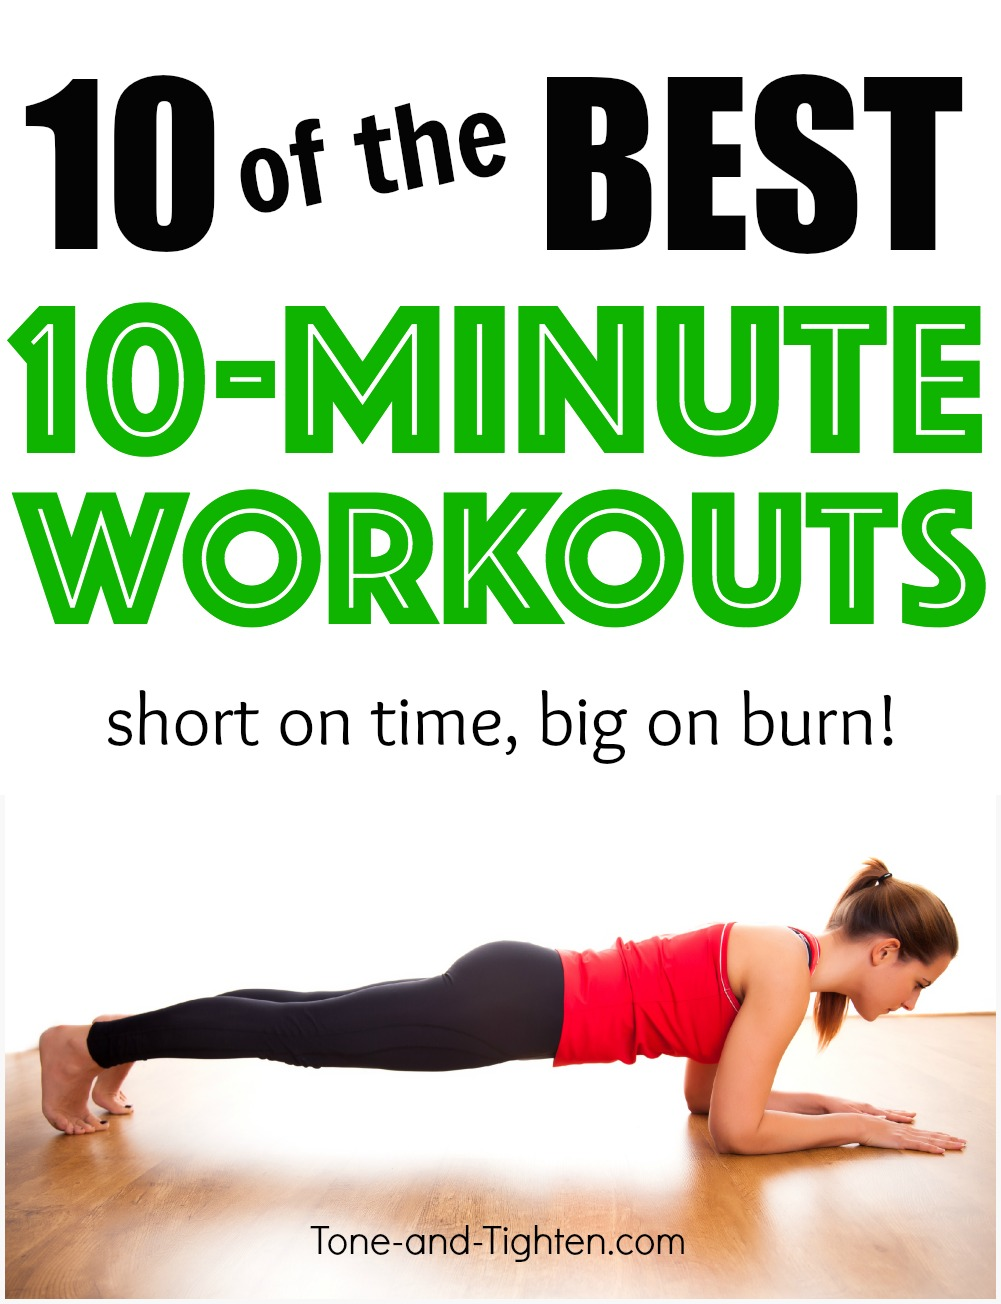 Ten of the Best 10-Minute Workouts